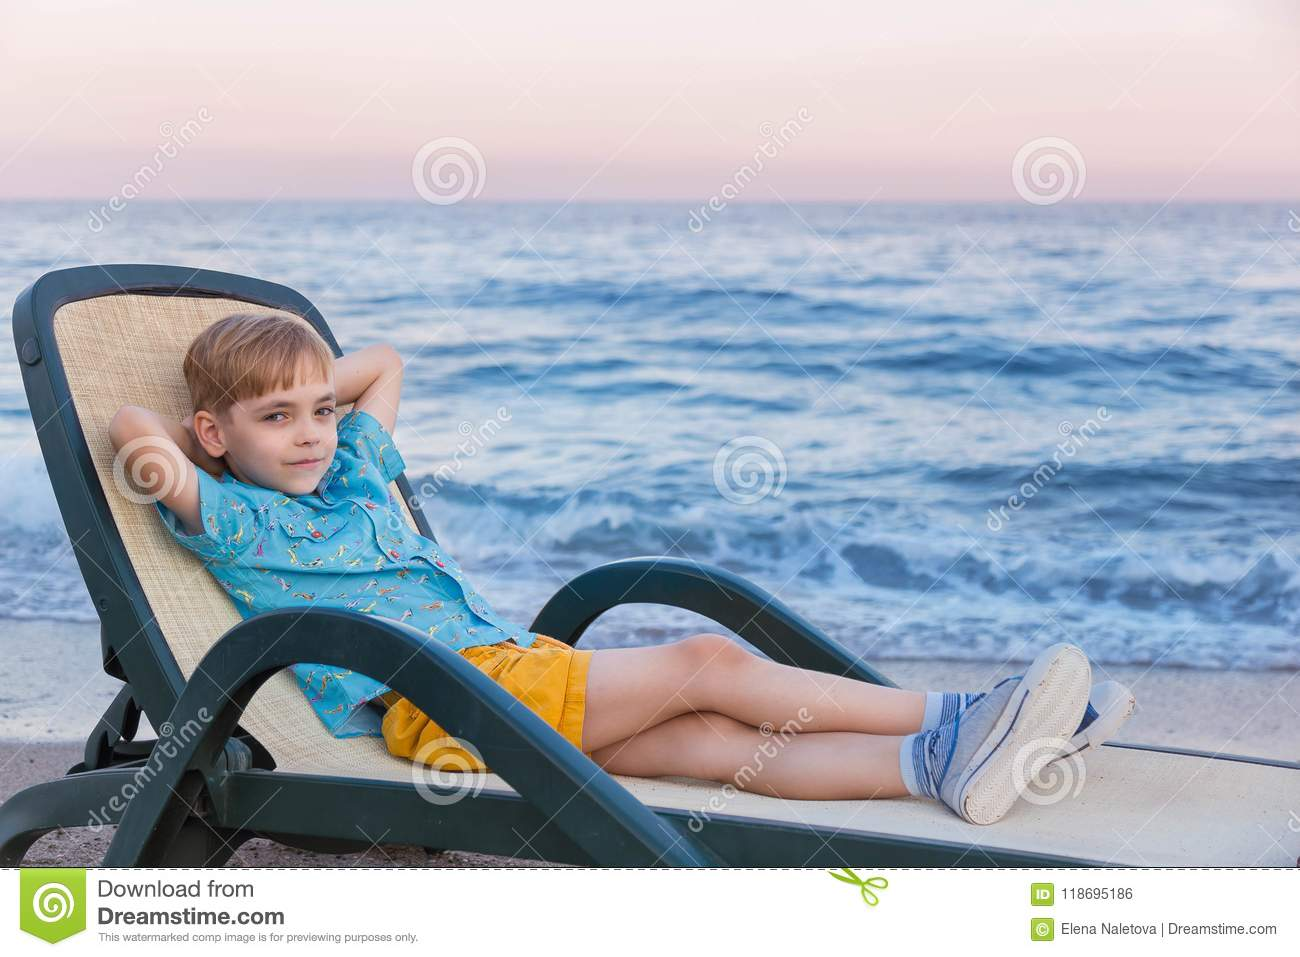 Boy of the European appearance in a blue striped t-shirt of a polo and yellow shorts has a rest in a chaise lounge at a surf strip